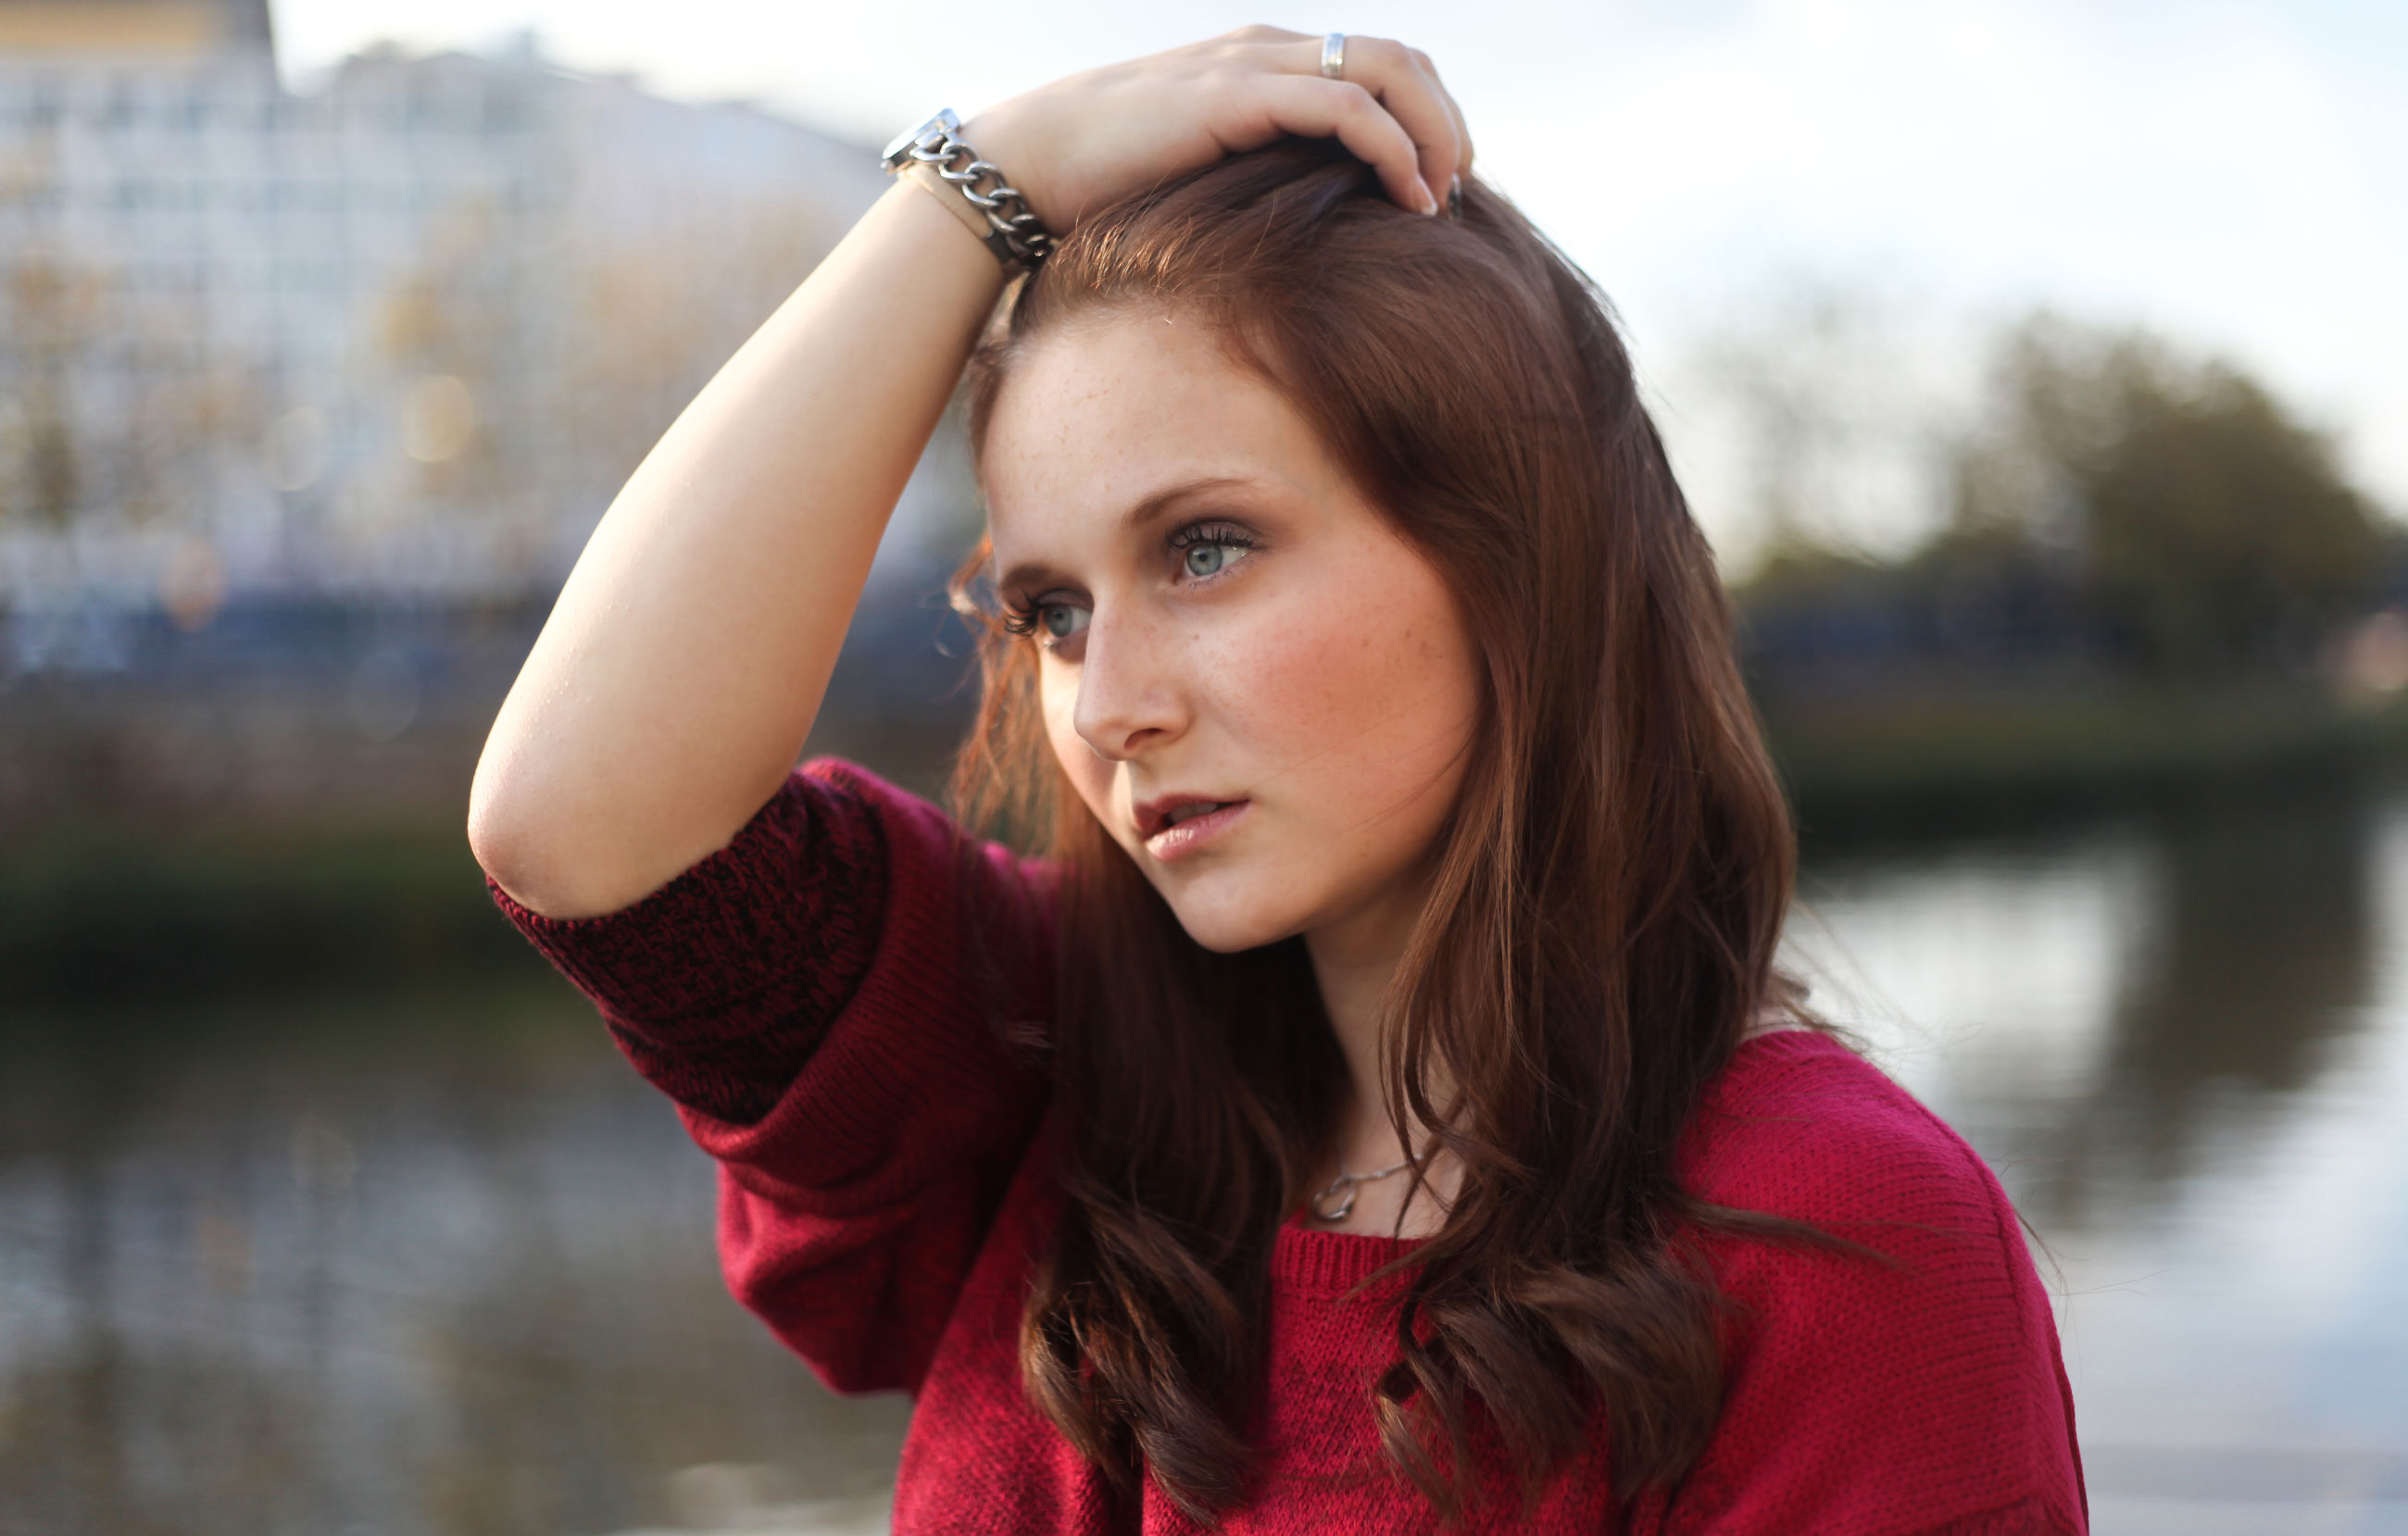 young adult, headshot, worried, one young woman only, young women, one person, focus on foreground, people, women, only women, close-up, one woman only, outdoors, adult, beauty, adults only, portrait, human body part, day